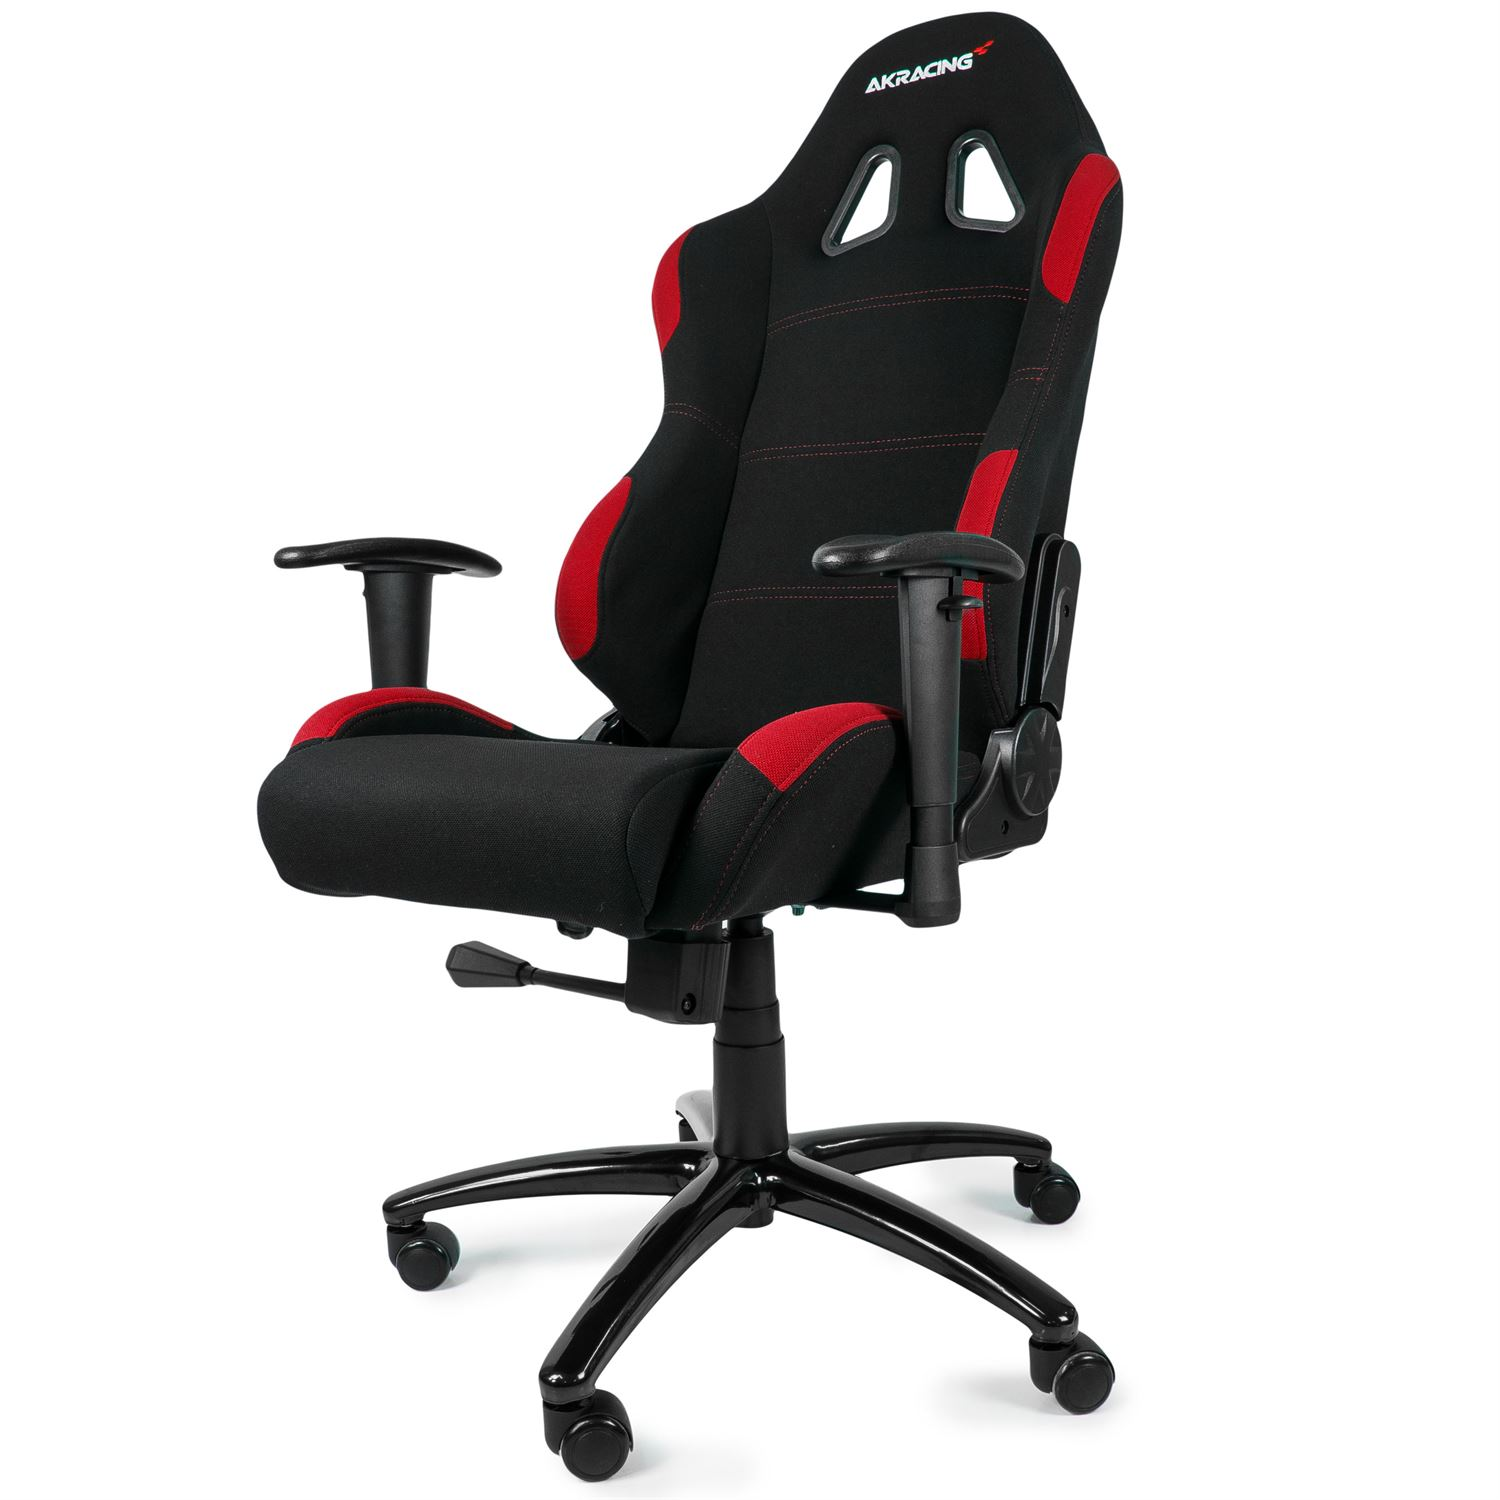 red and black gaming chair nc state bean bag akracing stole dk